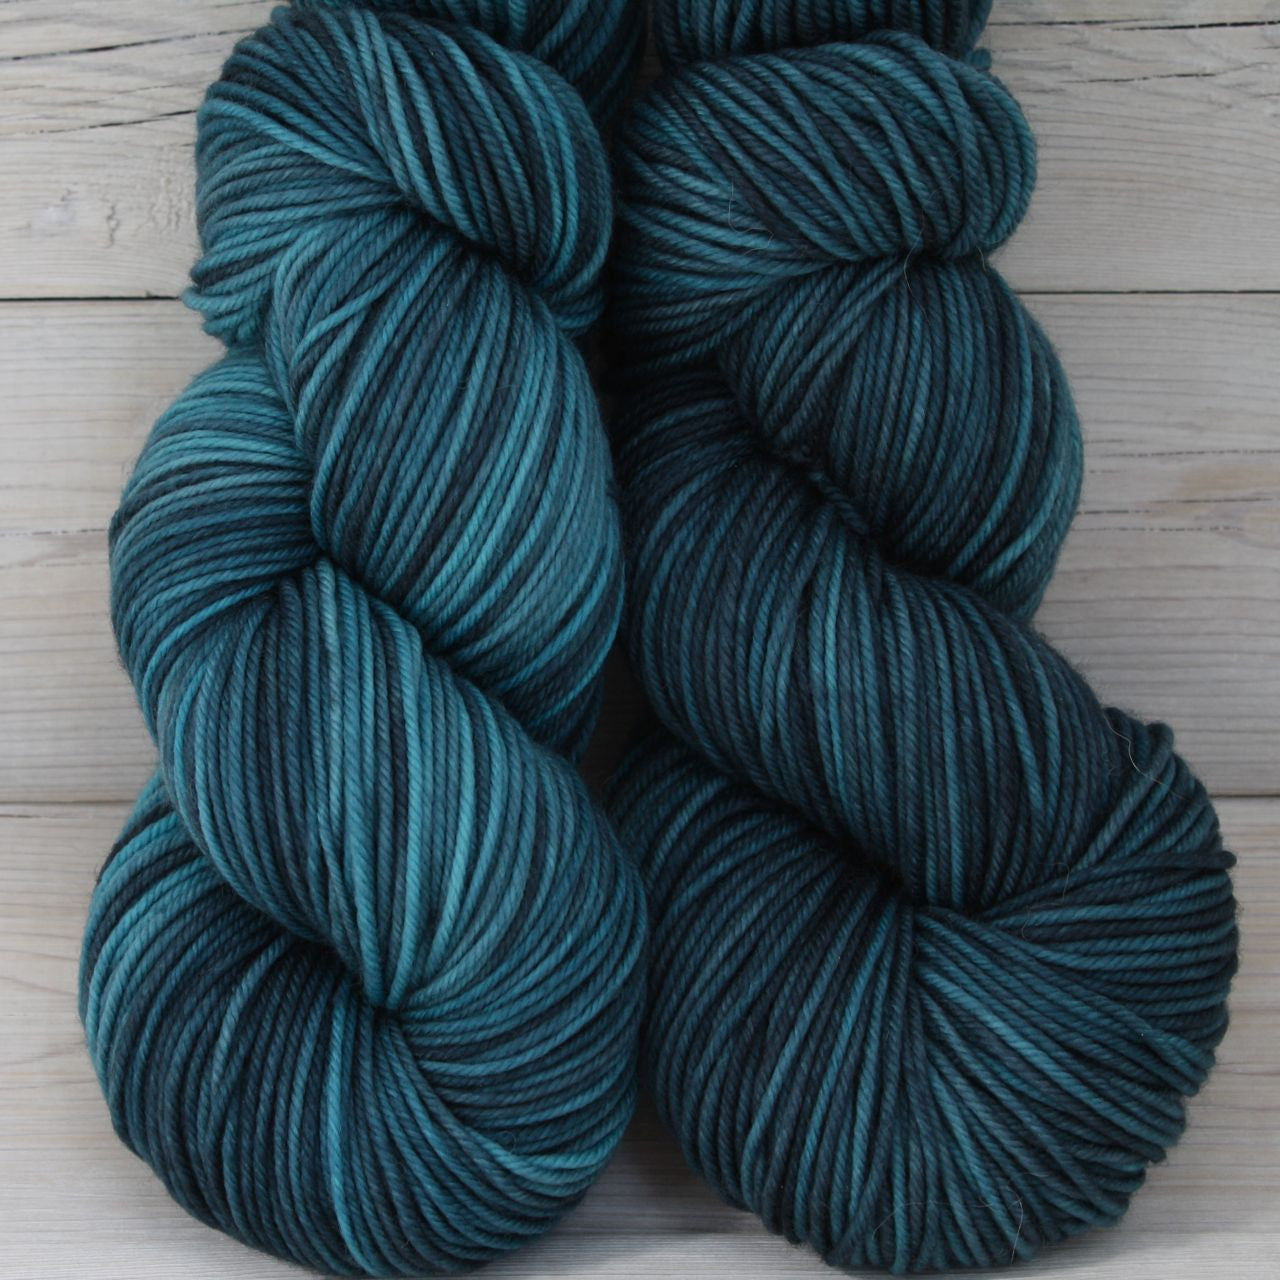 Calypso Yarn | Colorway: Techno